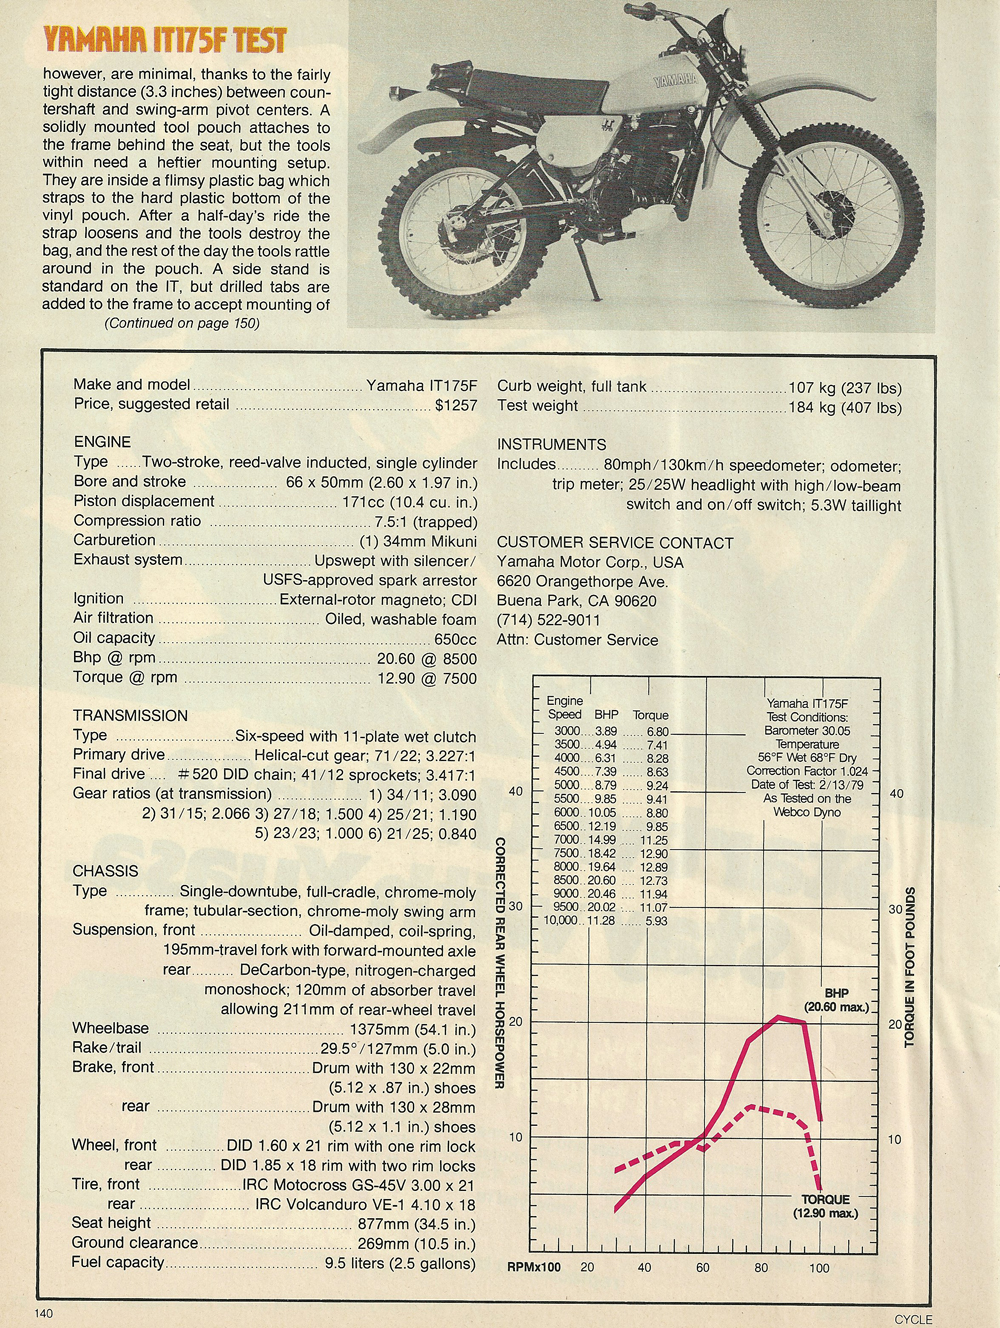 1979 Yamaha IT175F off road test 7.jpg